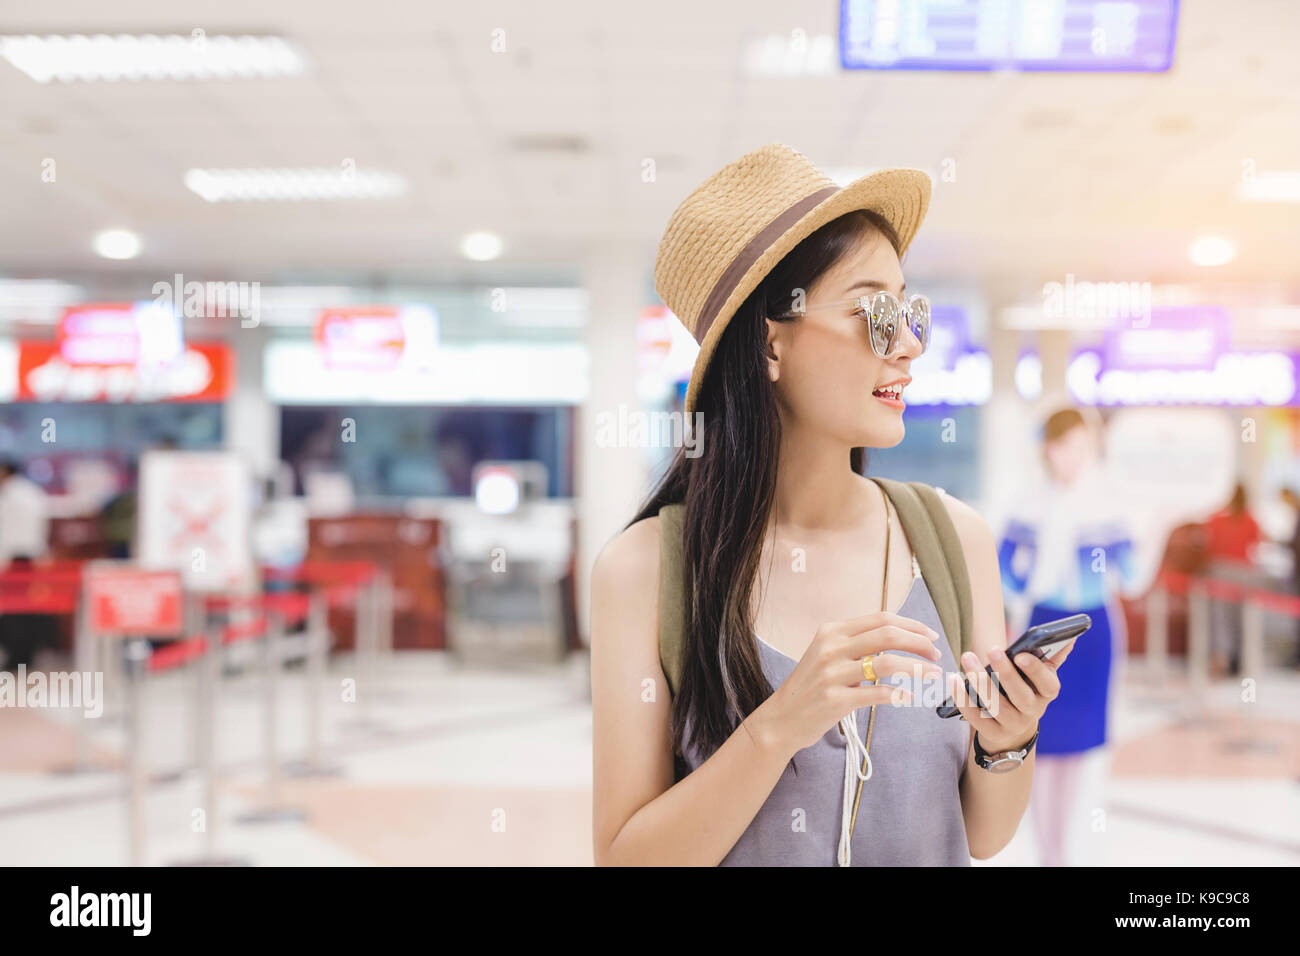 Female  check flight on smart phone at airport.Travel concept. - Stock Image